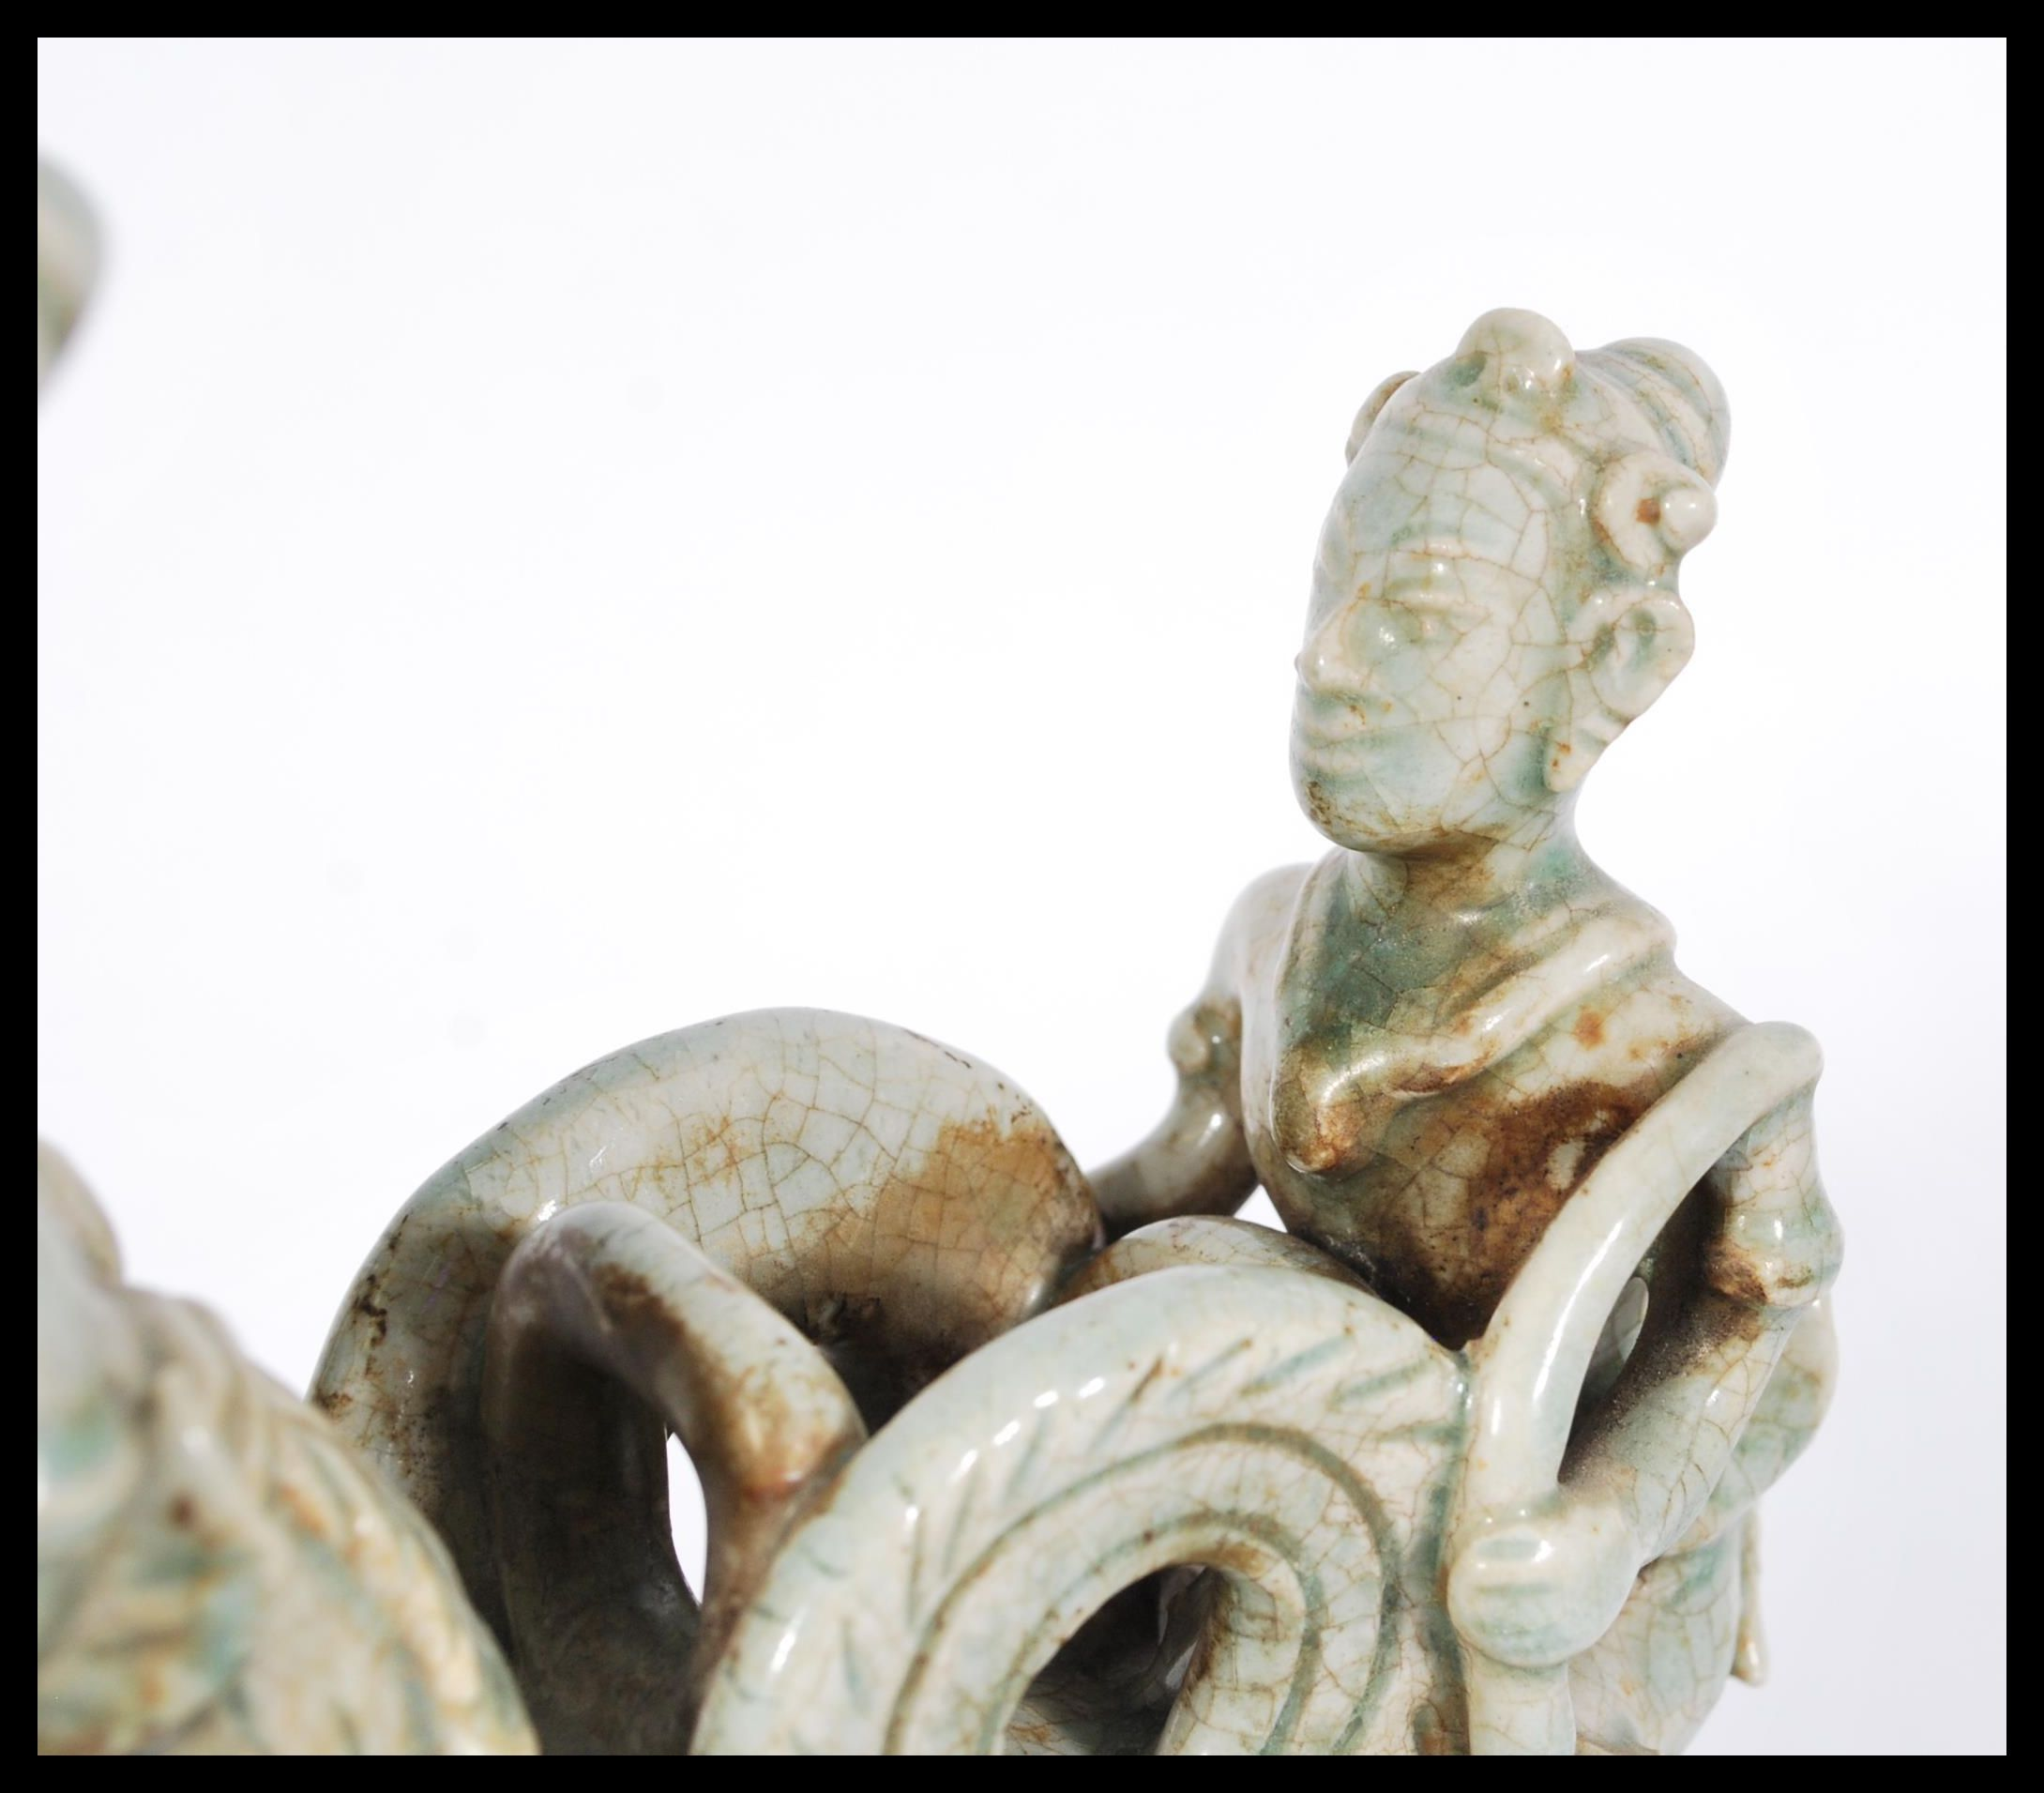 Lot 347 - A 20th century Asian Cambodian ceramic figure group with a mint crackle glaze on a rectangular